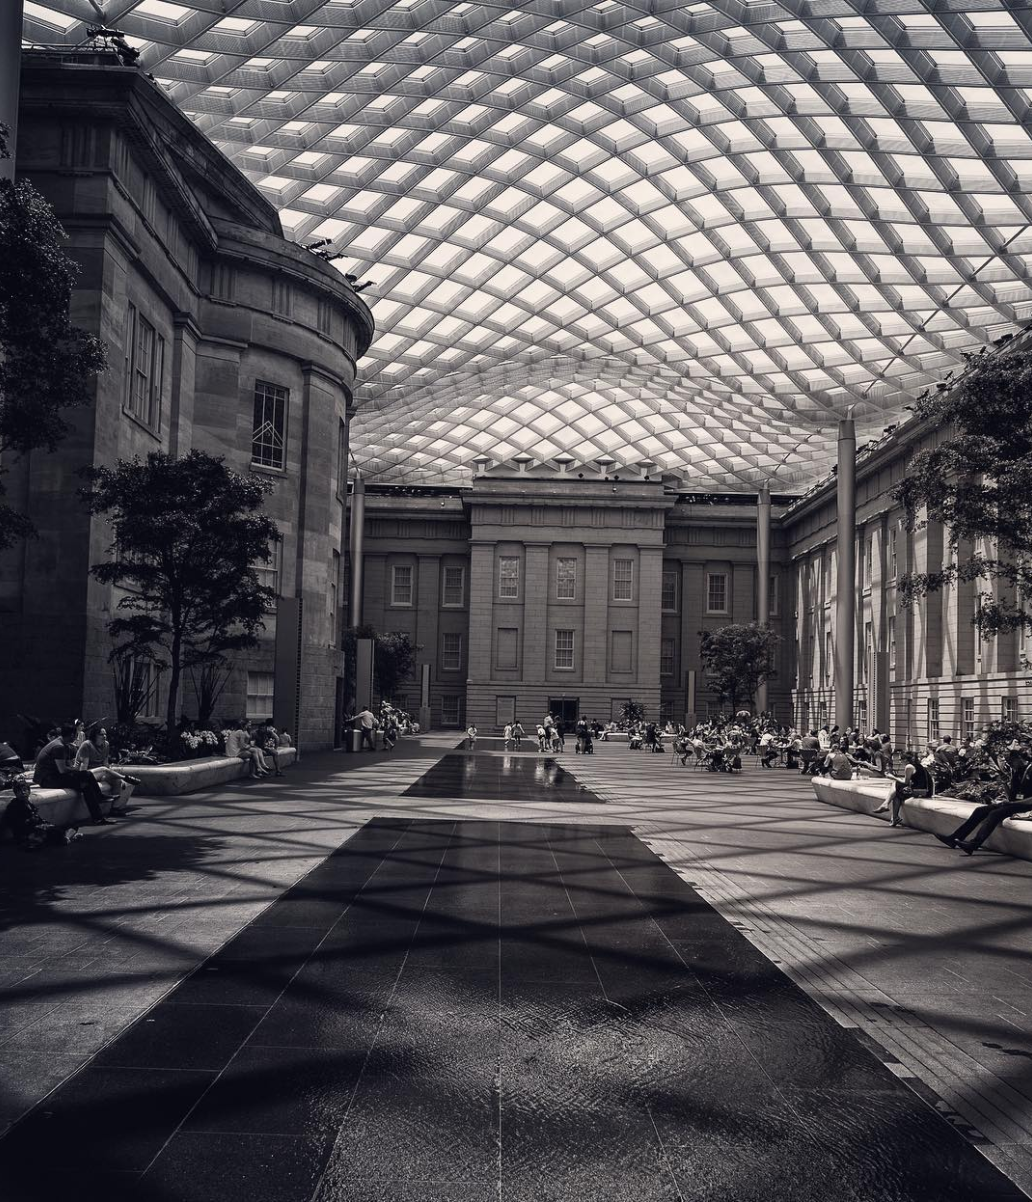 There's just no comparing the courtyard at the National Portrait Gallery. (Image via @instakanjo)